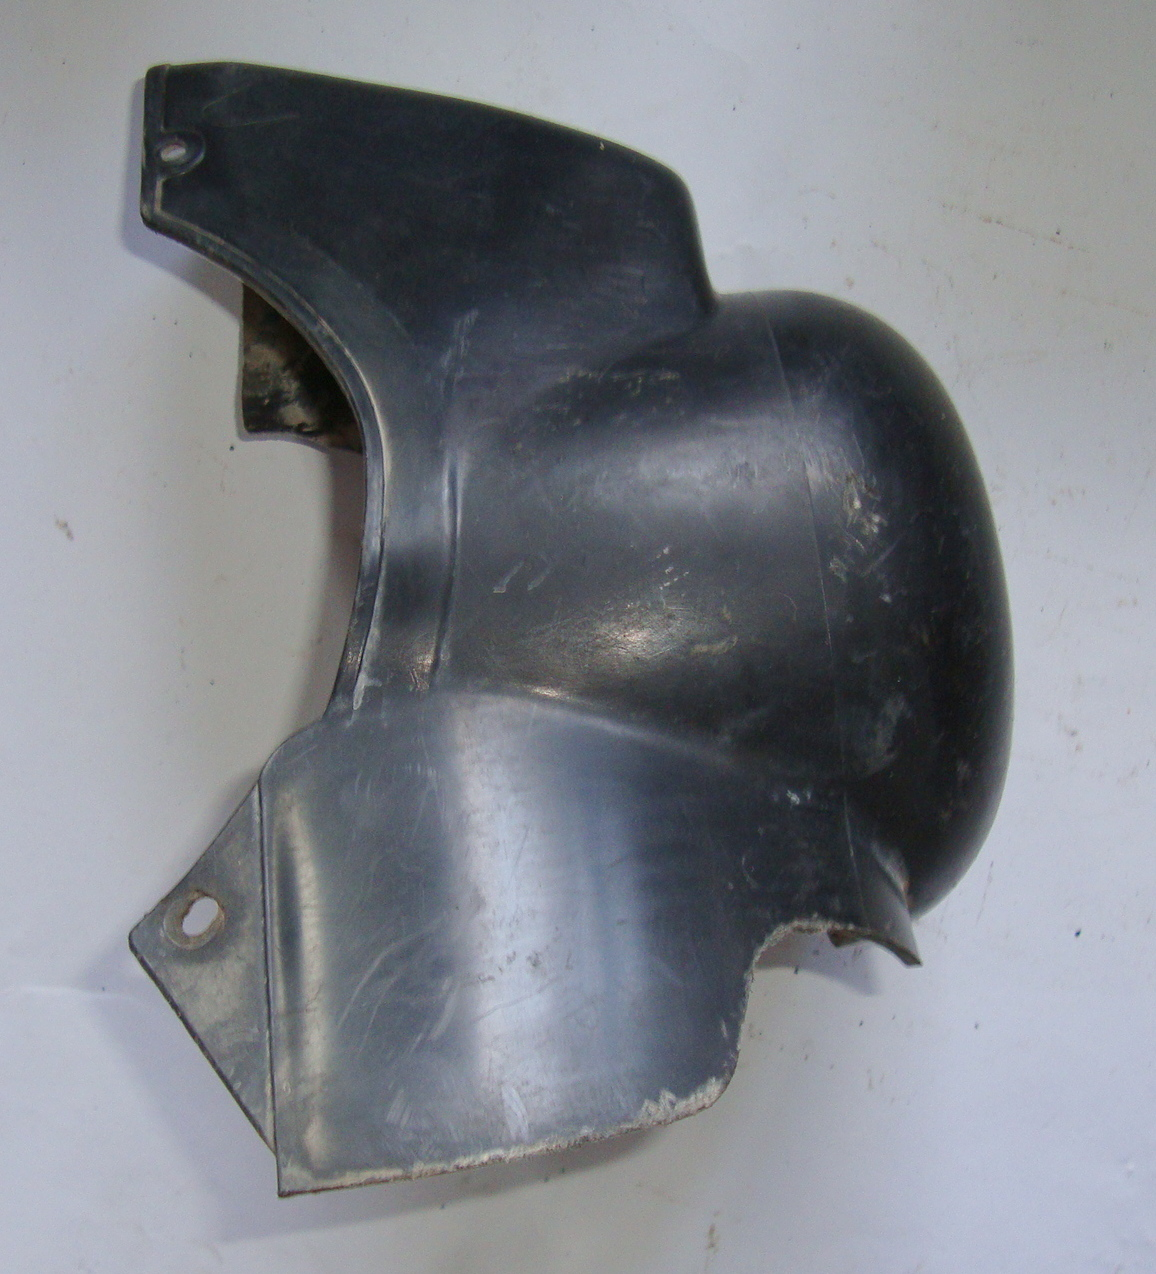 Cylinder cowling, Vespa PX 125 T5, used